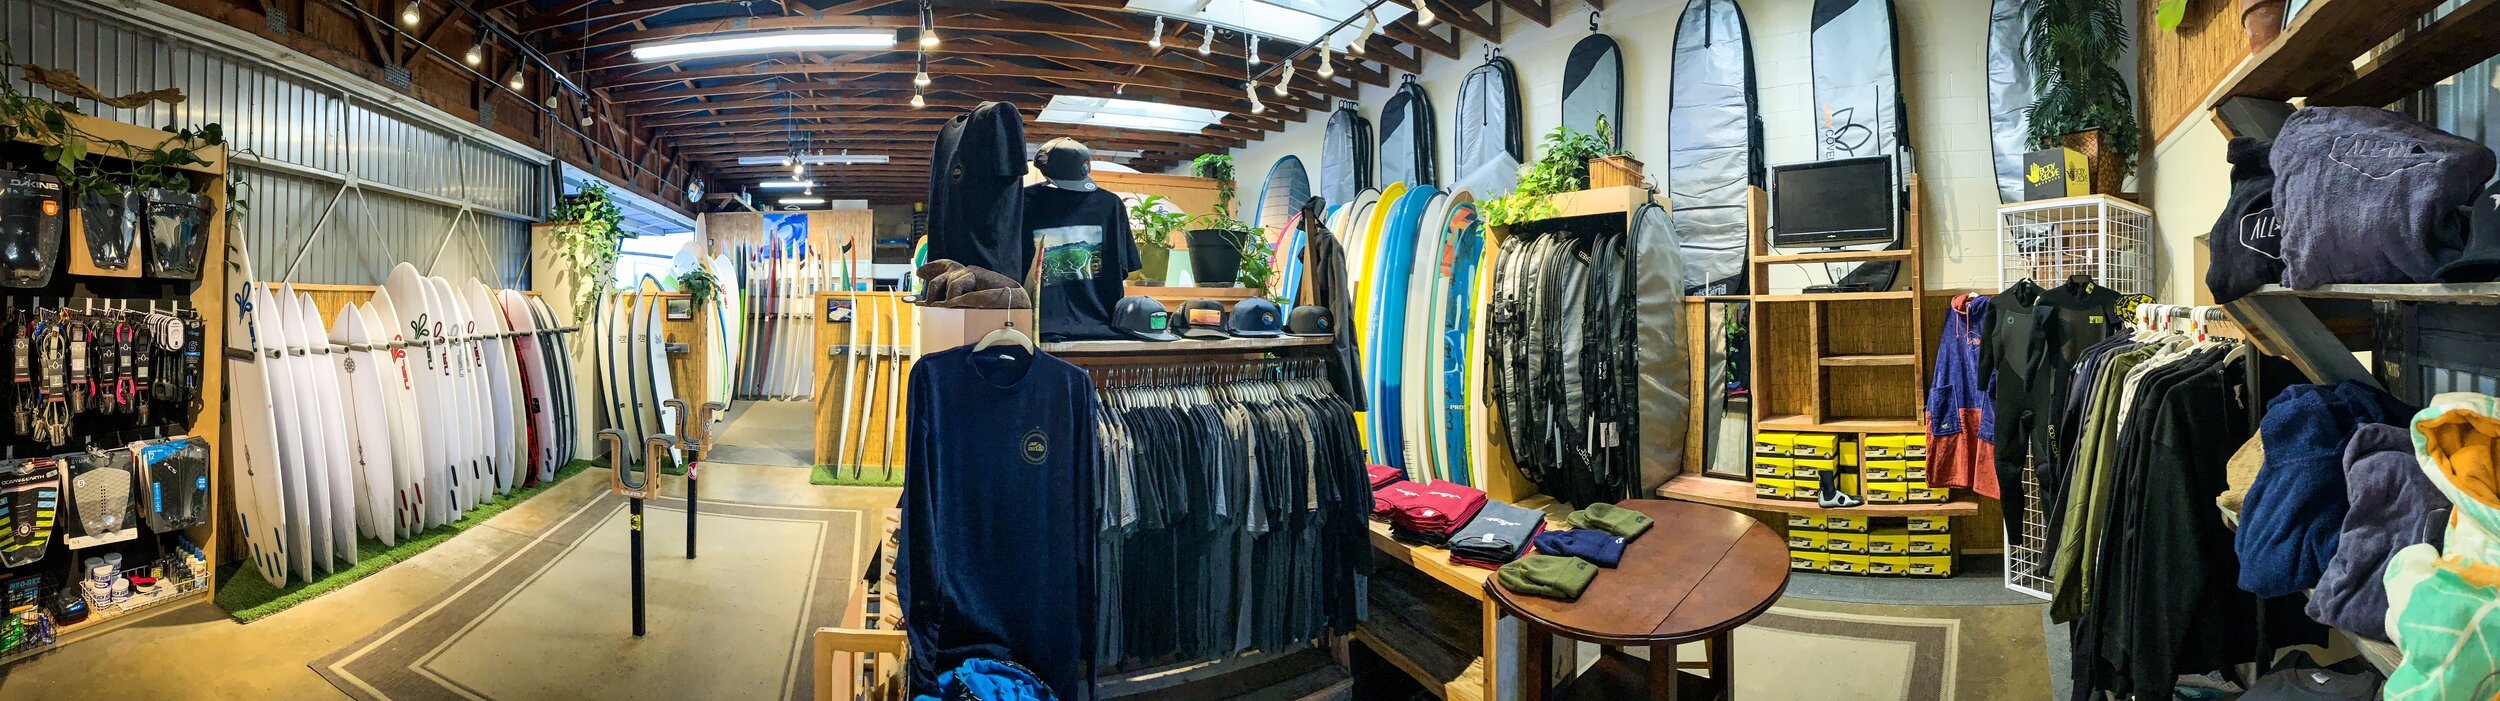 ESTERO can be found at    Joe's Surfboard Shop     362 Quintana Road in Morro Bay, Ca